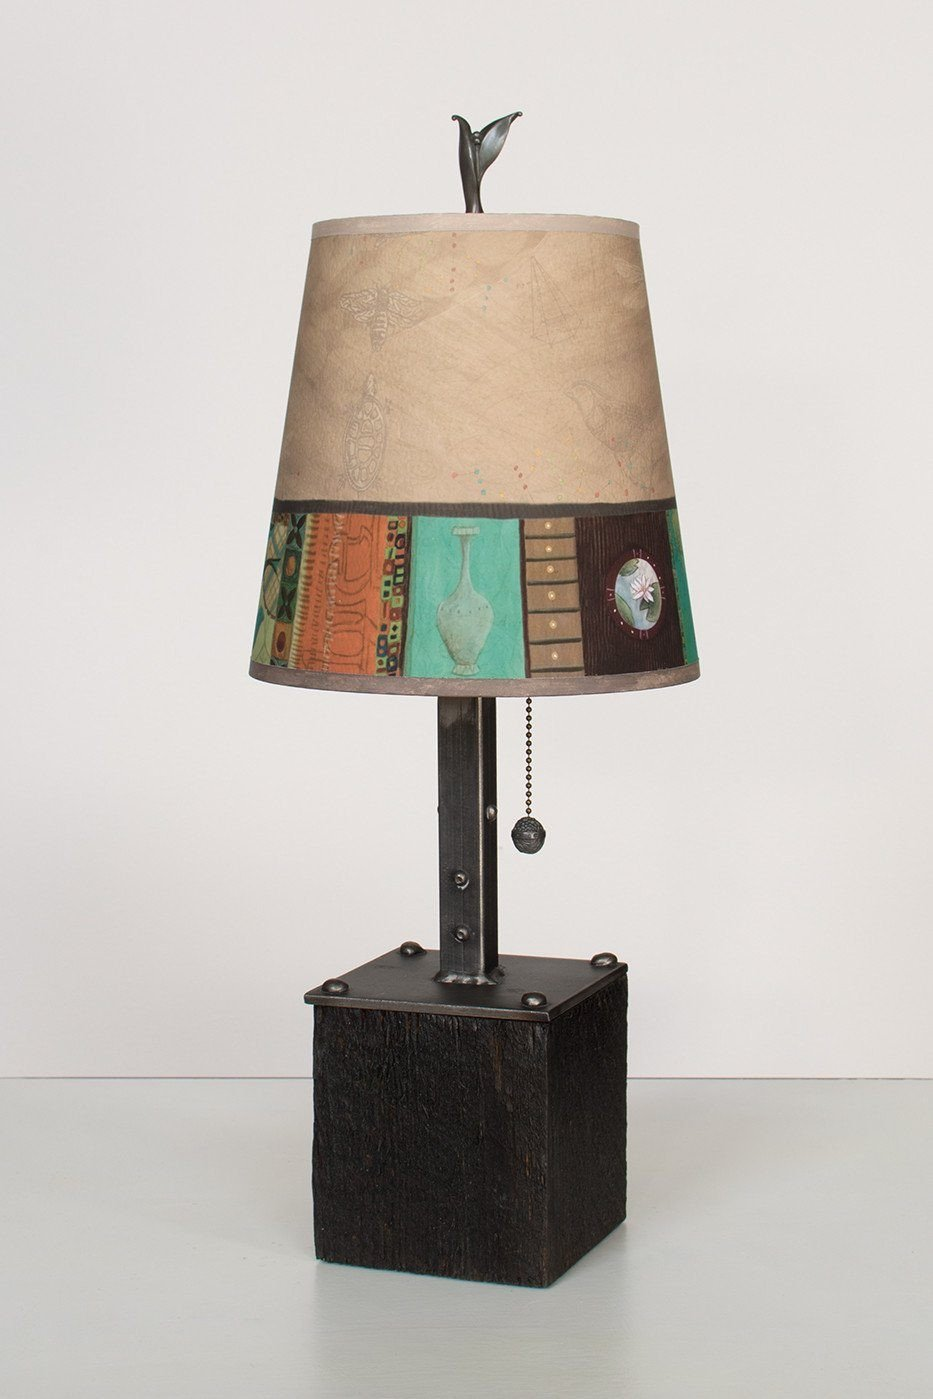 Steel Table Lamp on Reclaimed Wood with Small Drum Shade in Linen Match Lit